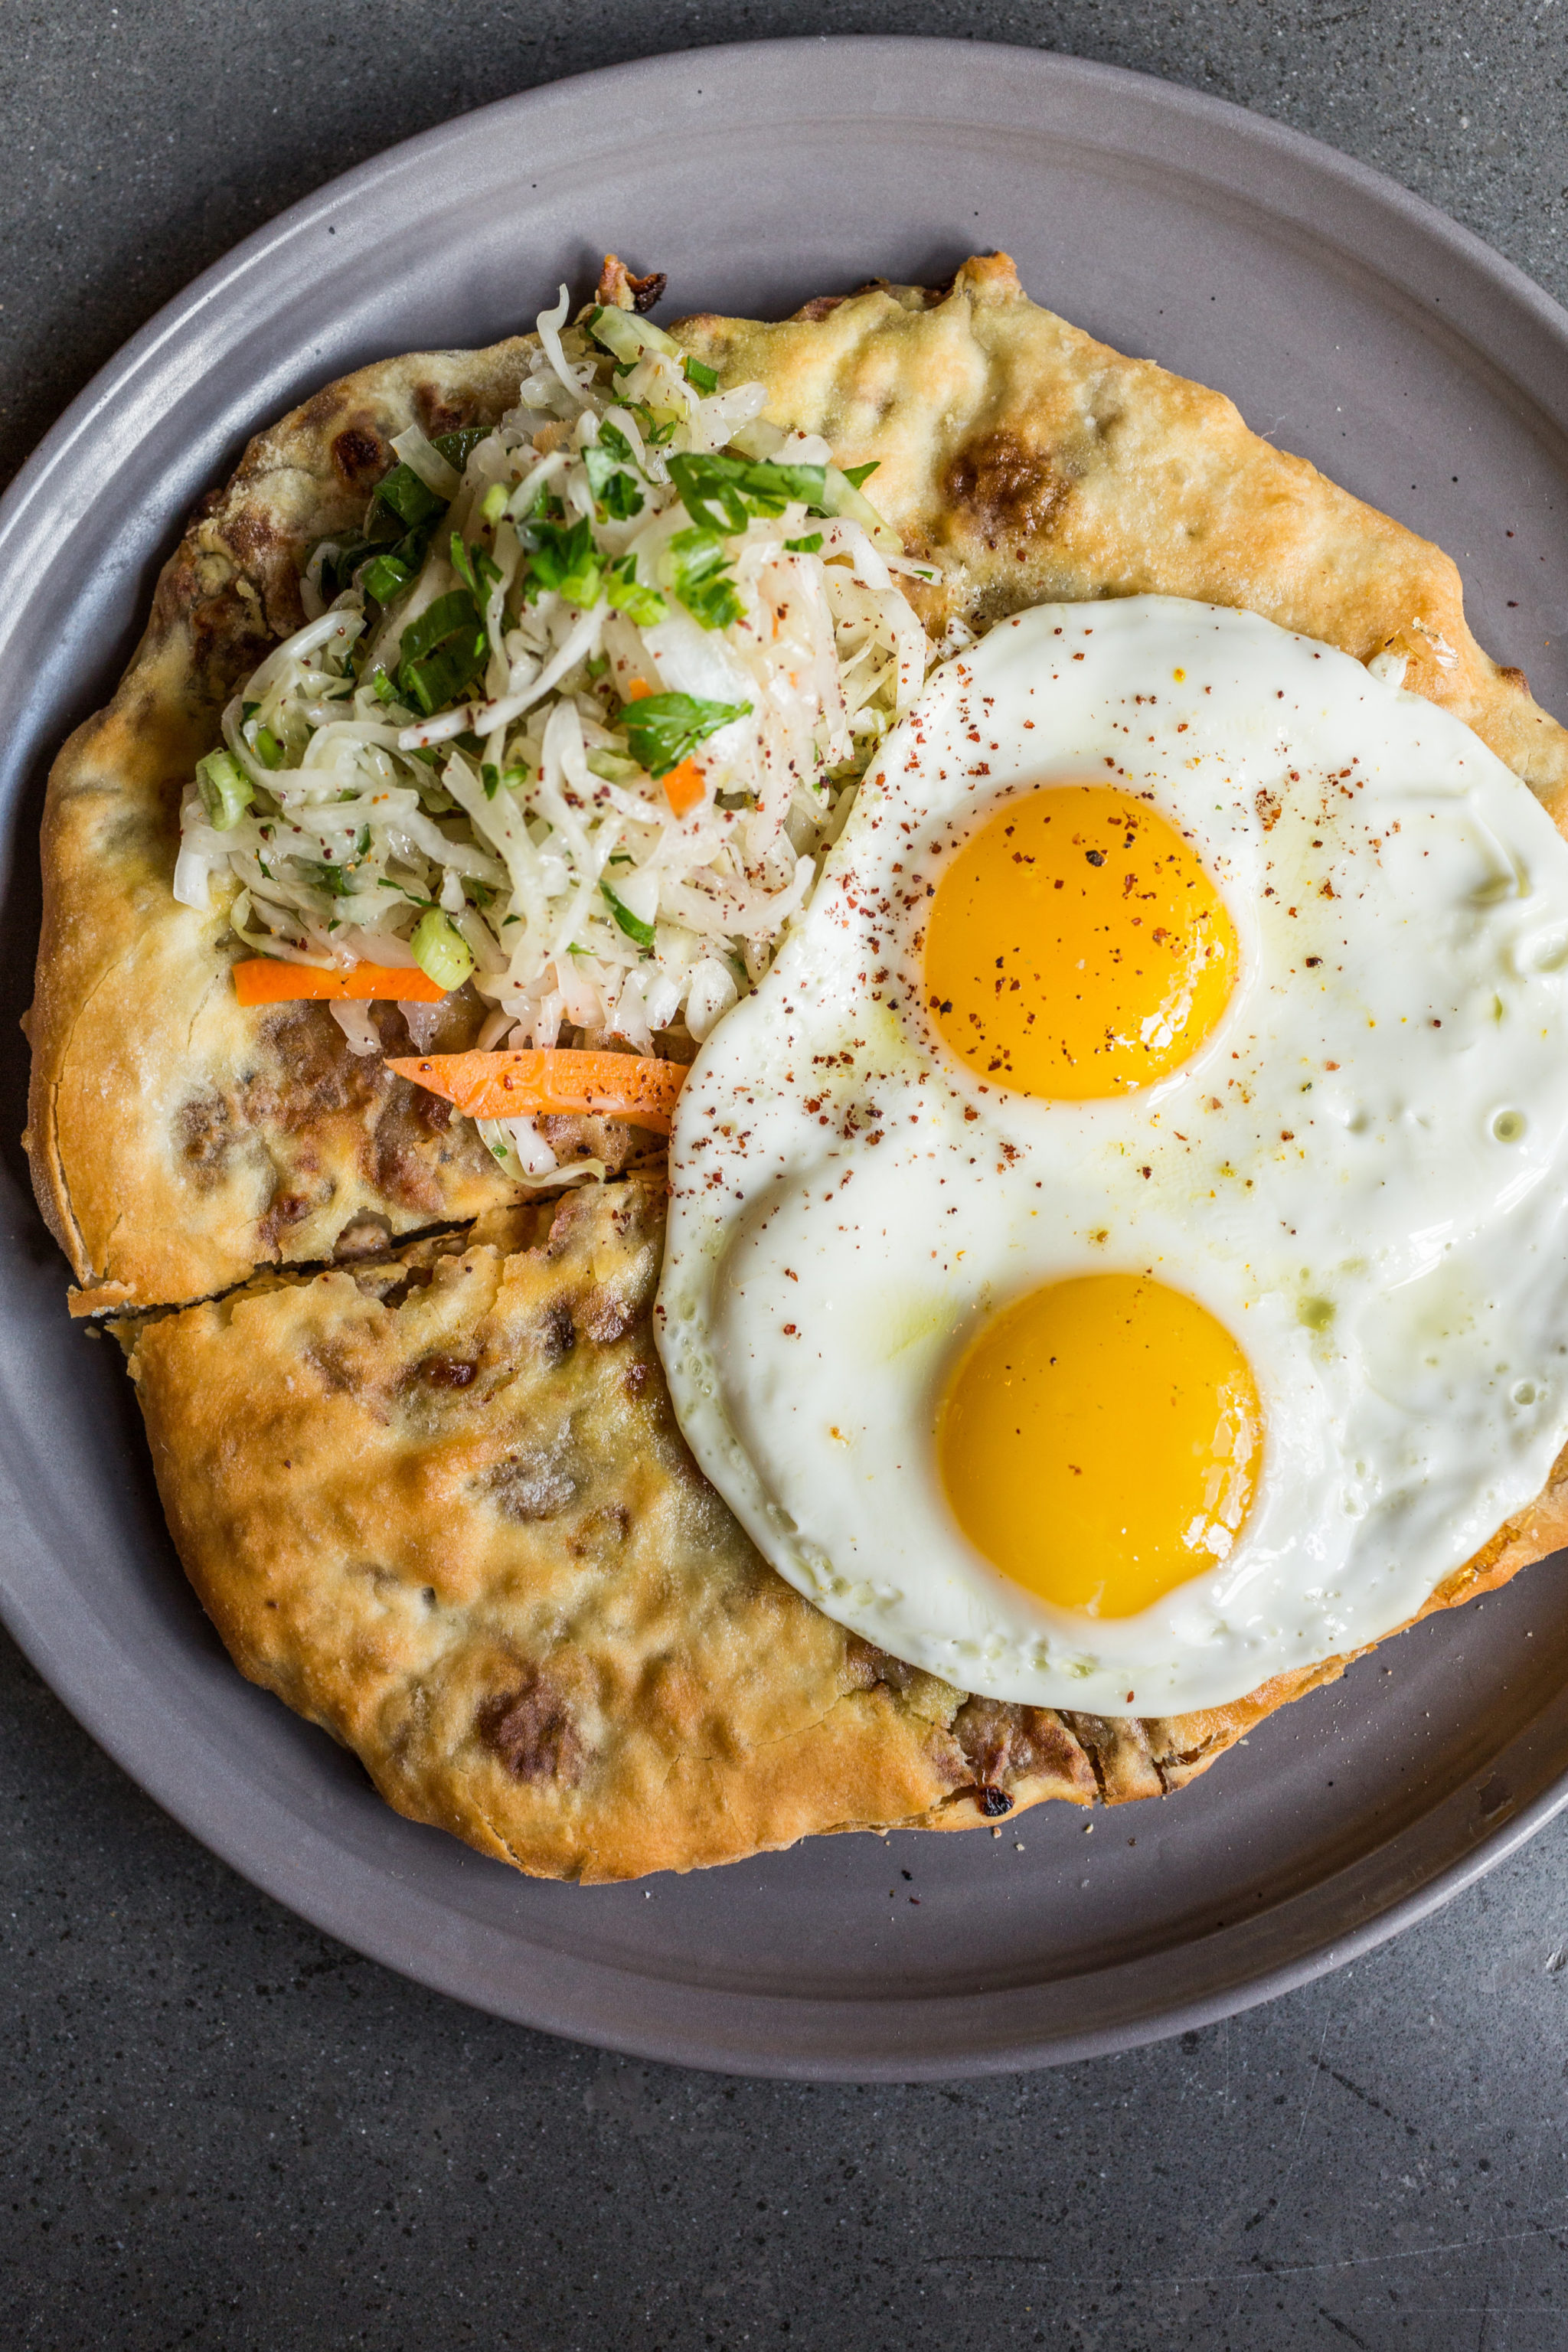 Potato-and-cheese-stuffed khabizgina is topped with an egg at Supra. Photo courtesy of Supra.